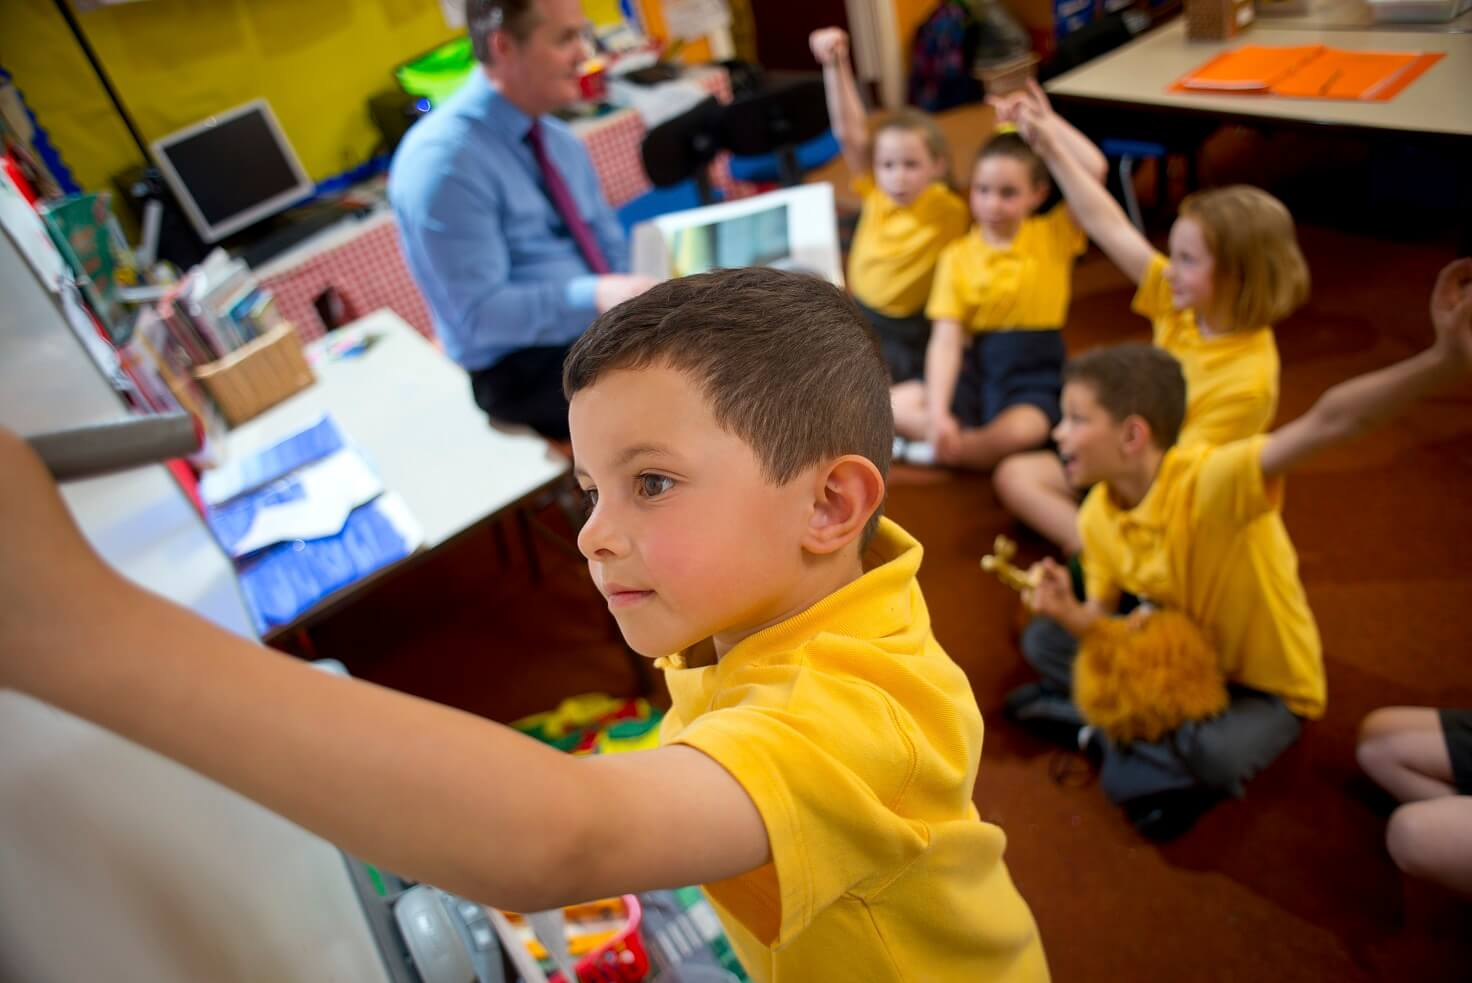 Could using antimicrobial products reduce school absenteeism?